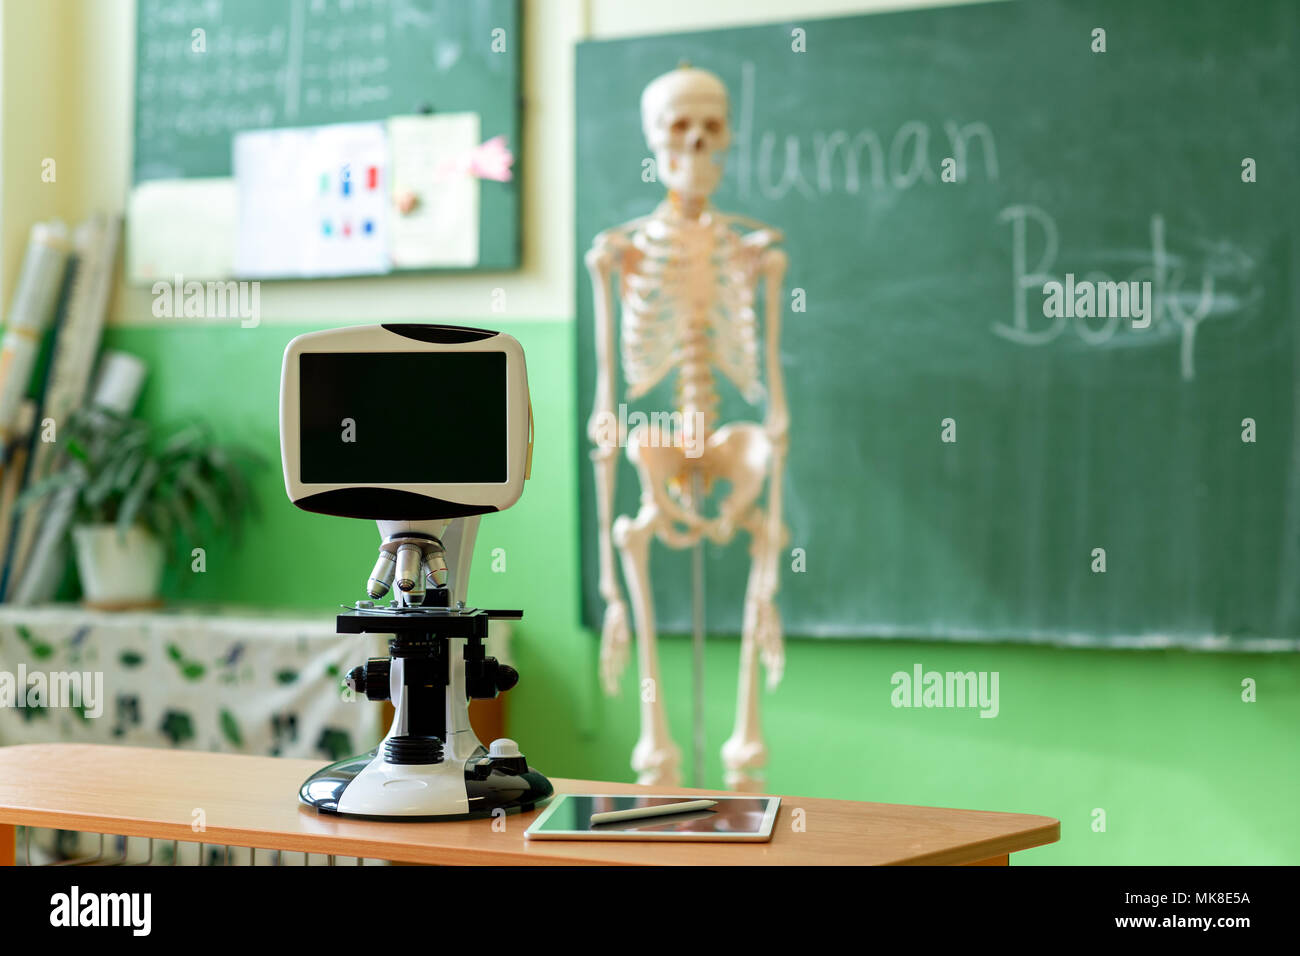 Biology classroom. Artificial human body skeleton, student desk with microskope and digital tablet. Anatomy teaching aid. Education and generation z c - Stock Image